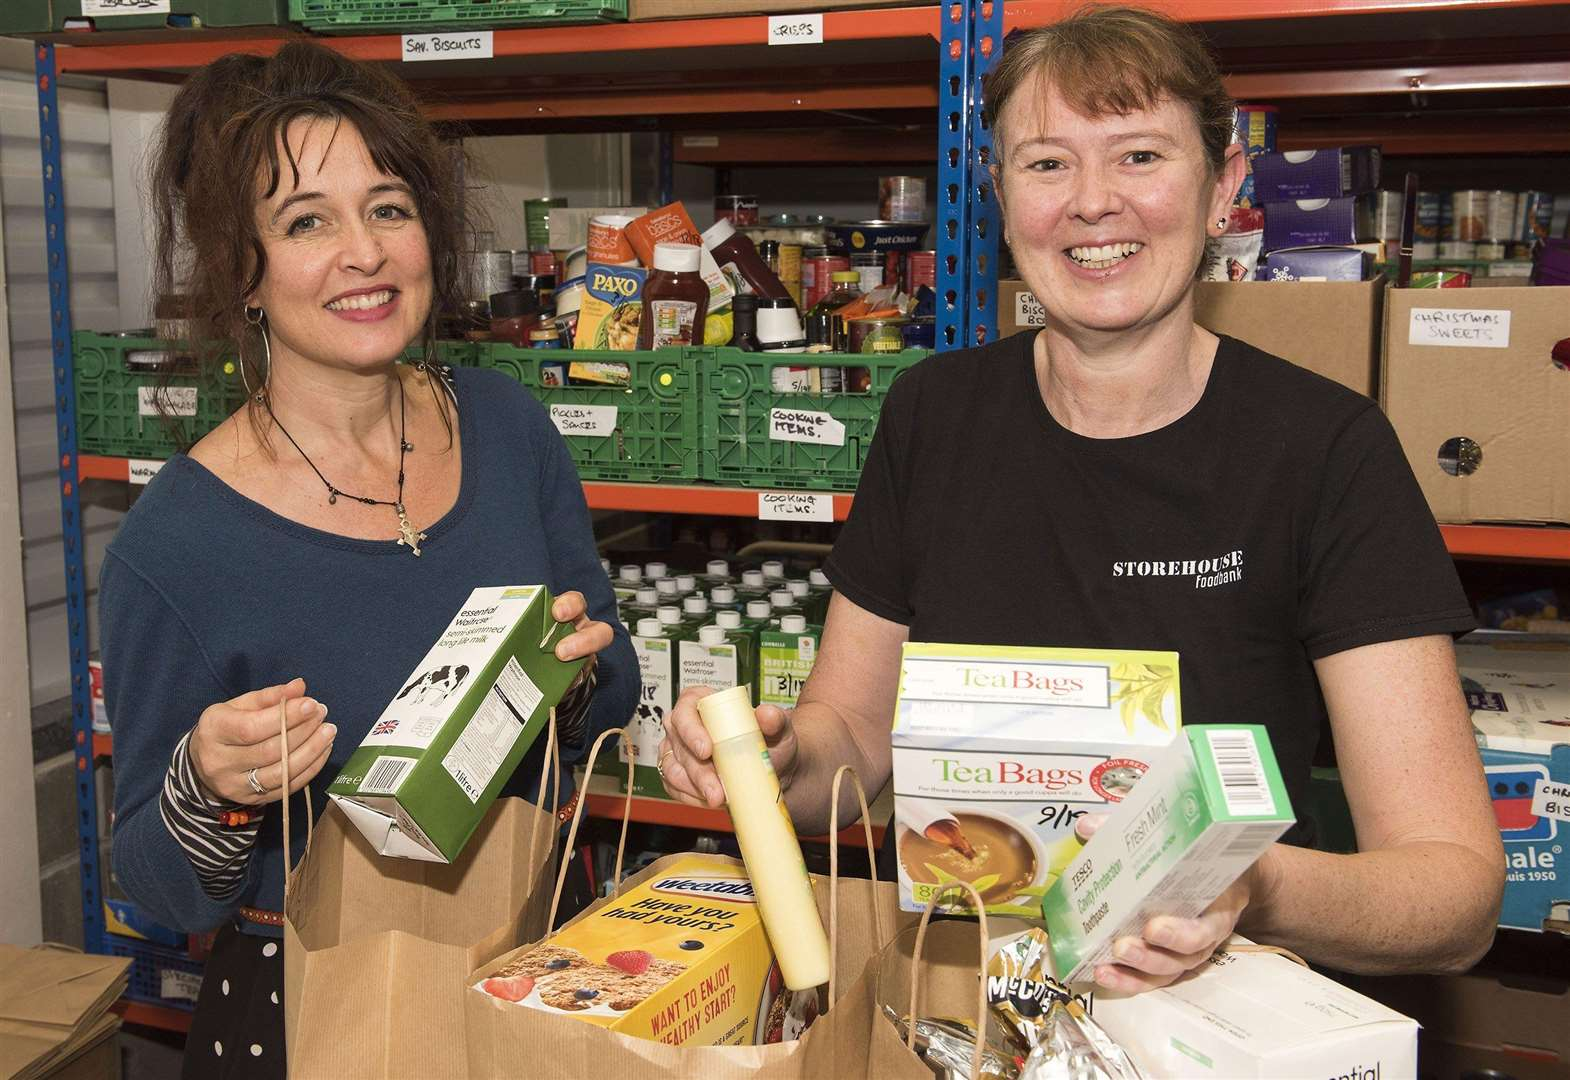 Sudbury foodbank makes desperate plea for cash donations